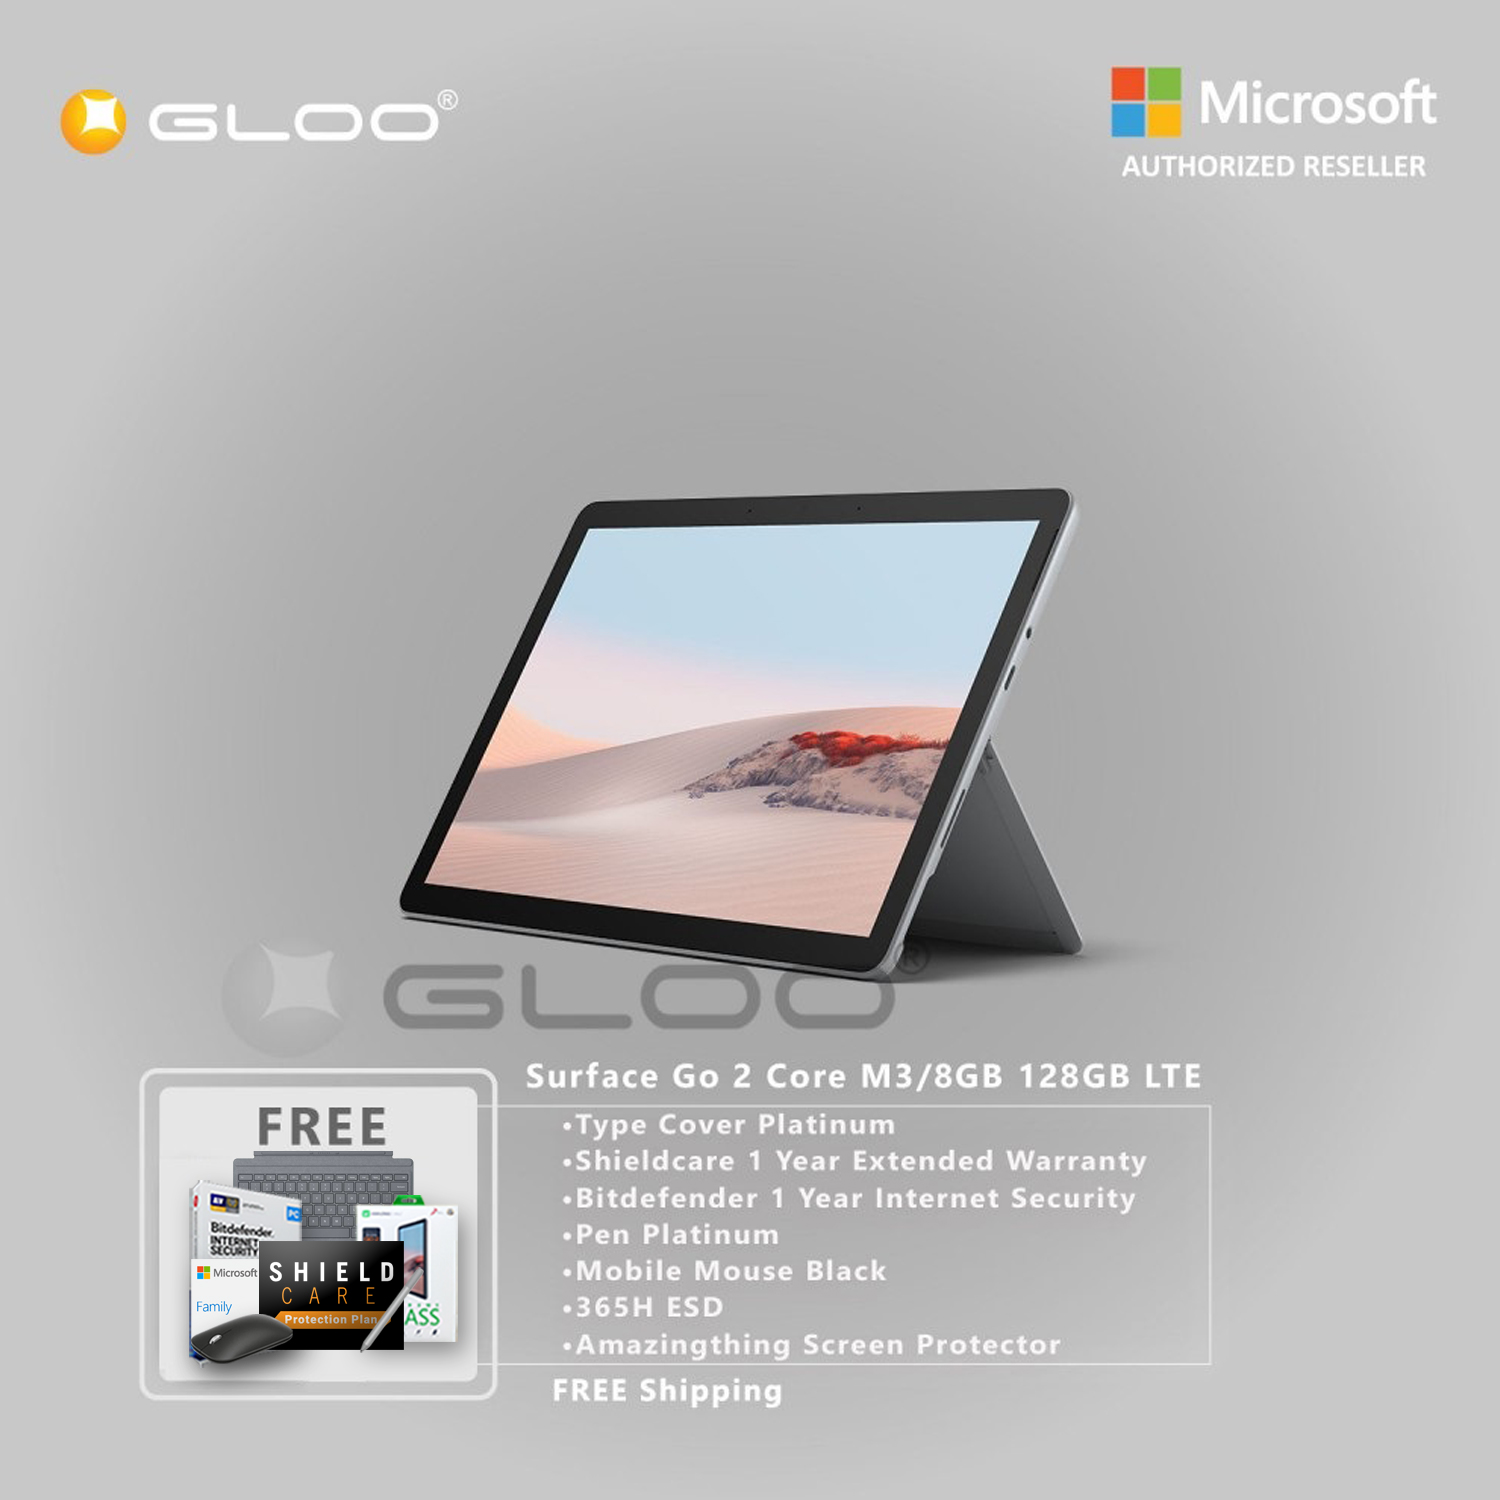 Microsoft Surface Go 2 Core M3/8GB 128GB LTE + Surface Go Type Cover Platinum + Shield Care 1 Year Extended Warranty+ Bitdefender 1 Year Internet Security+ Pen Platinium + Mobile Mouse Black + 365H ESD + Amazingthing Screen Protector [BPPMSOFZCBAMSV]